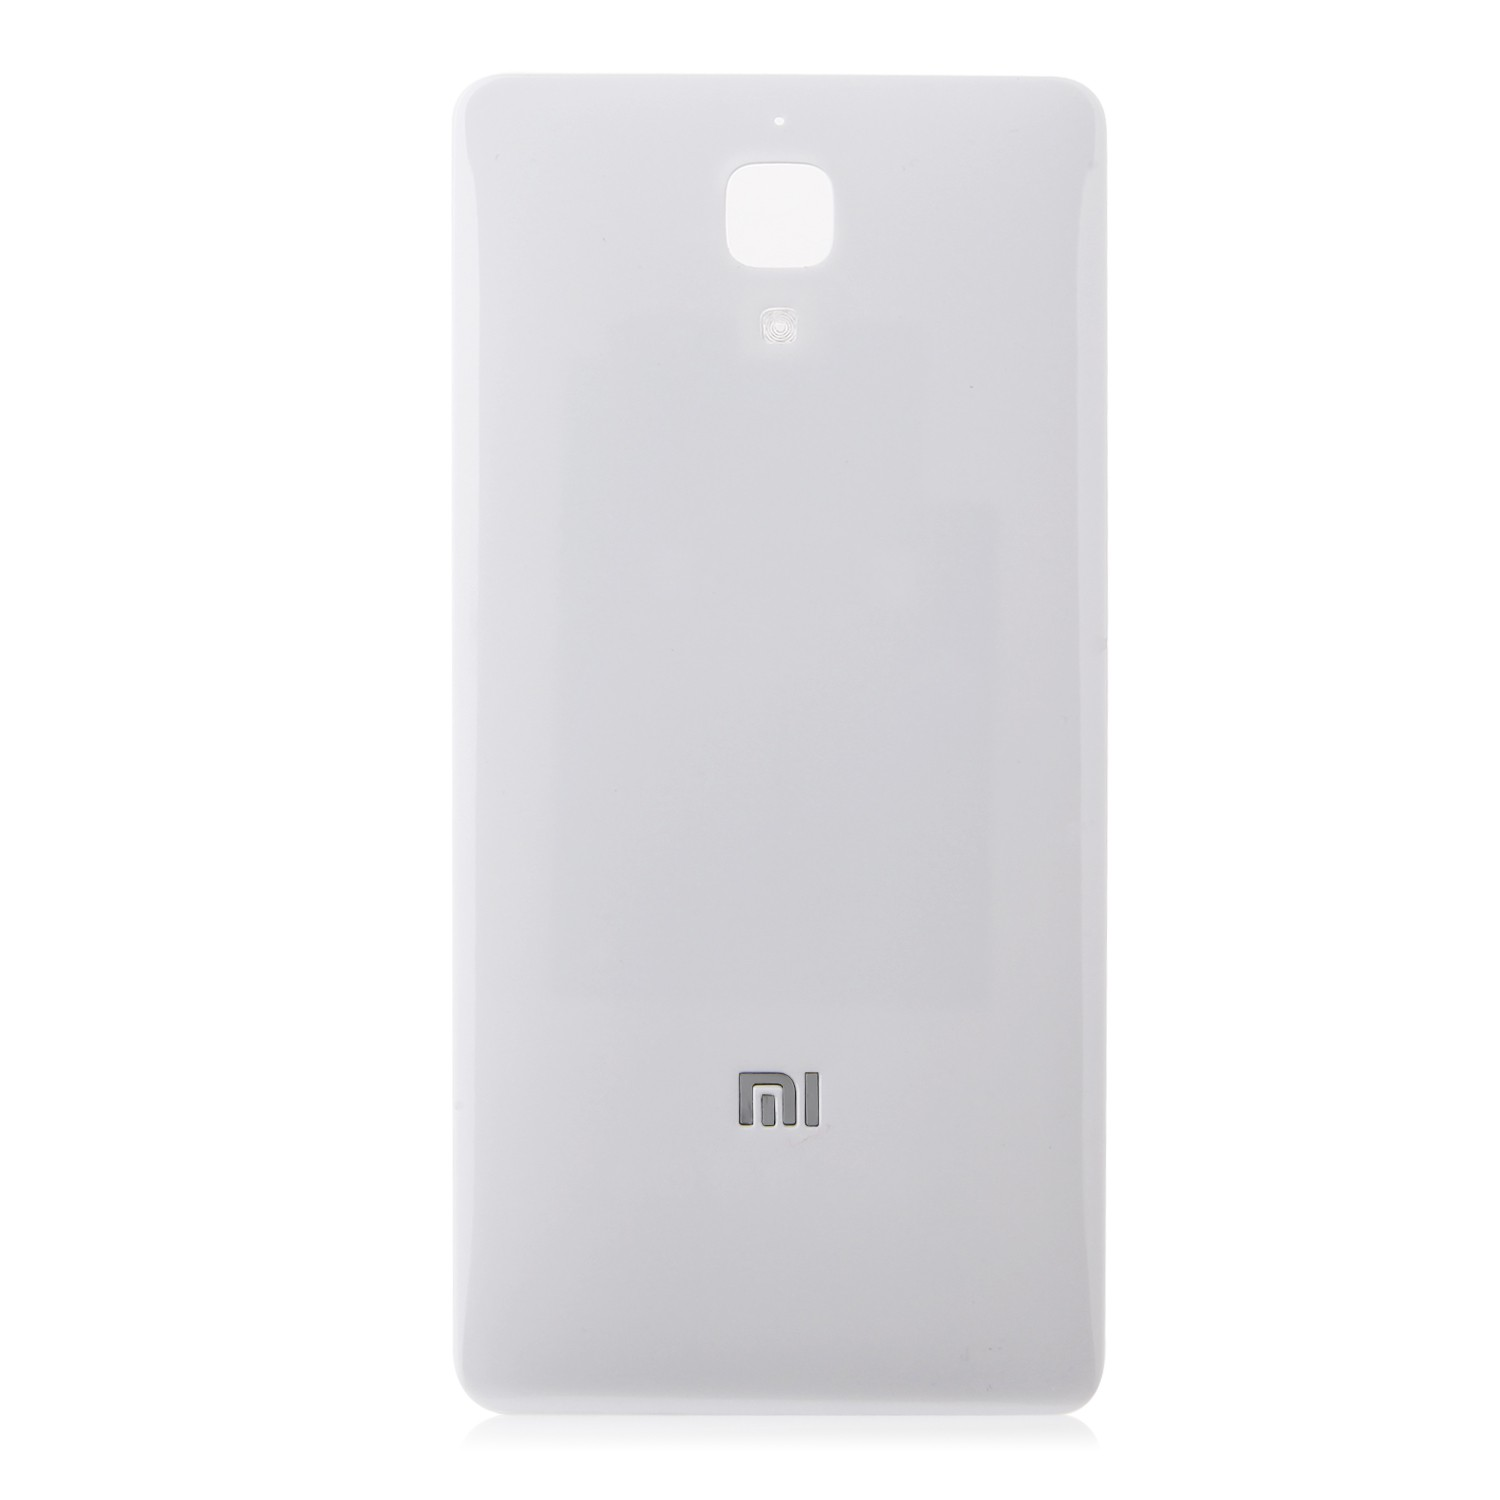 XiaoMi Mi 3 4 4i 4S 5 8 POCOPHONE F1 PLAY Battery Back Cover Housing